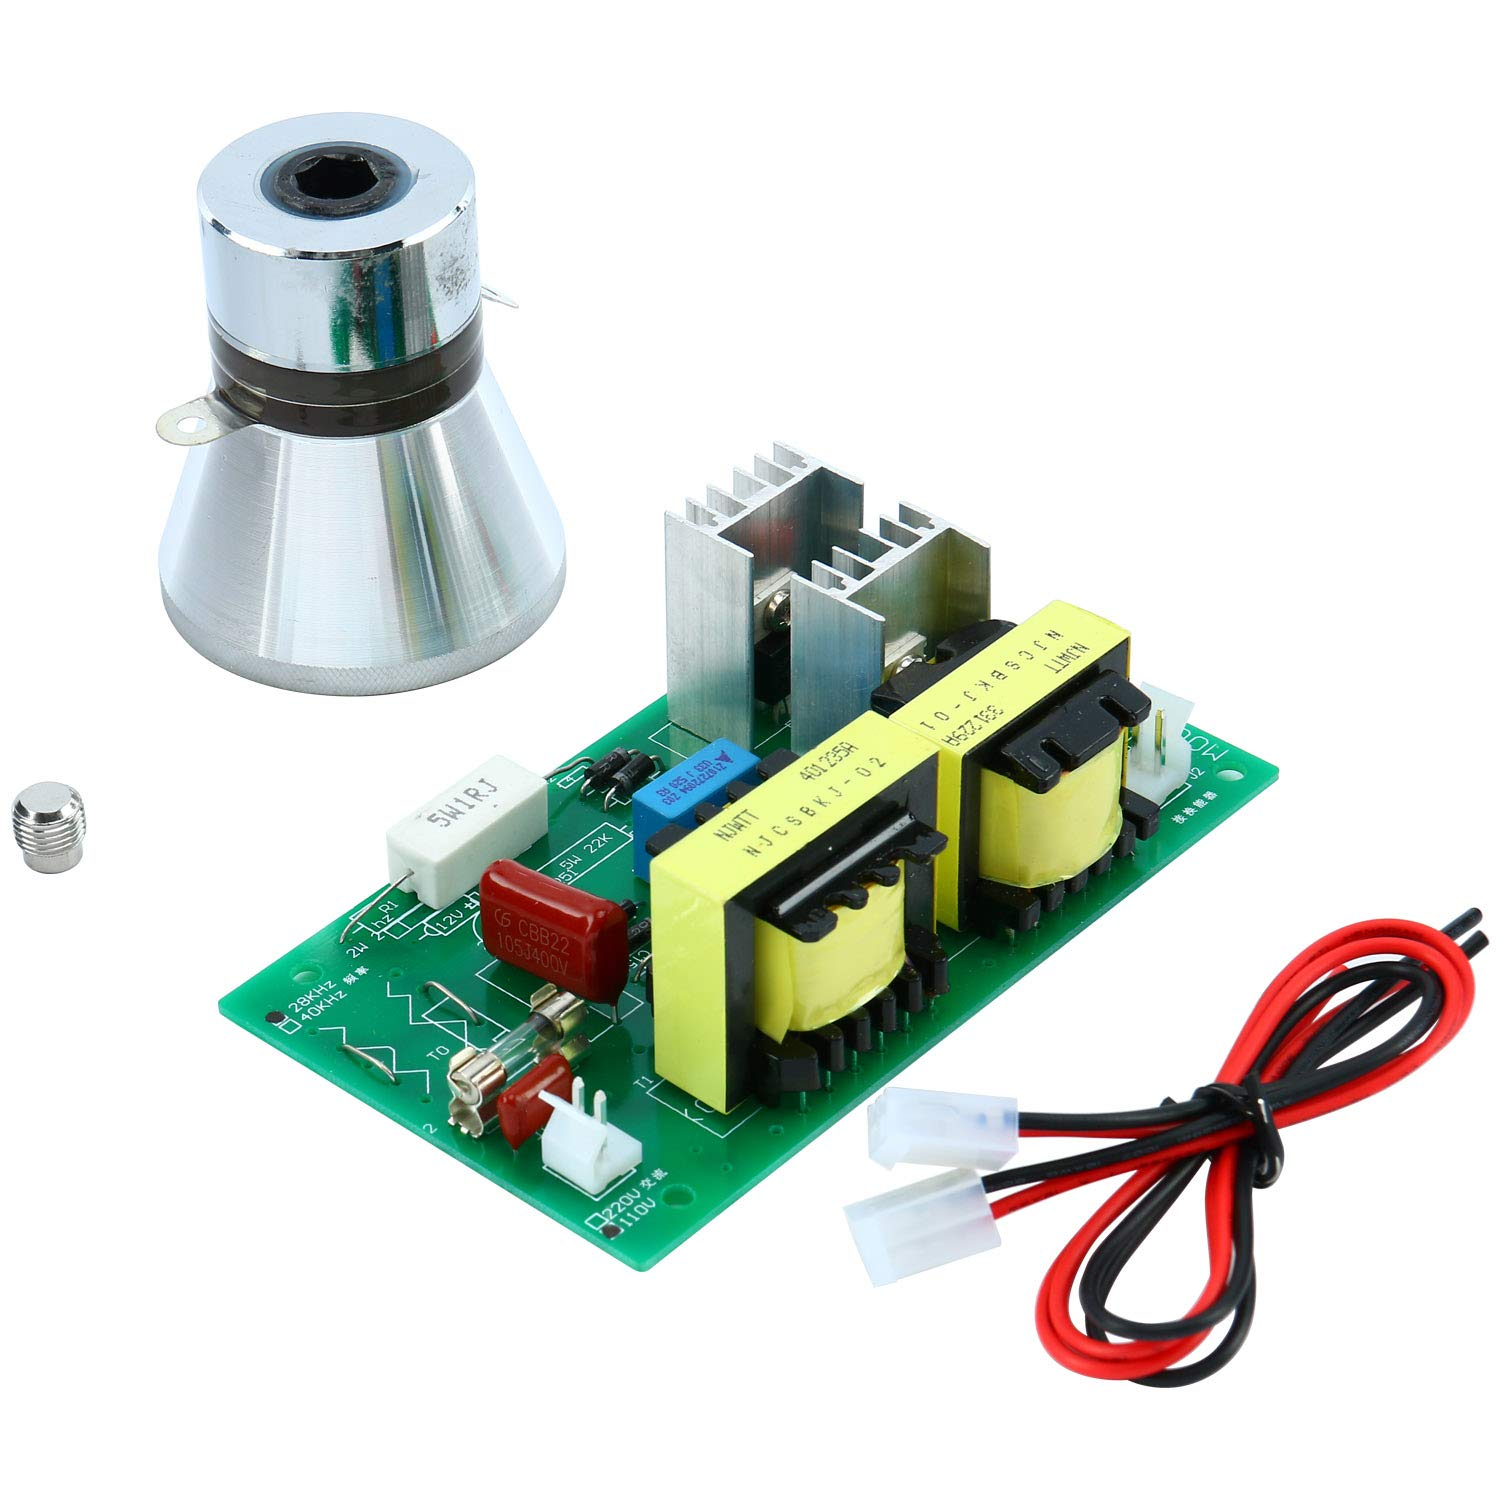 AC110V Power Driver Board + 100W 28KHz Ultrasonic Cleaning Transducer Cleaner by YaeCCC